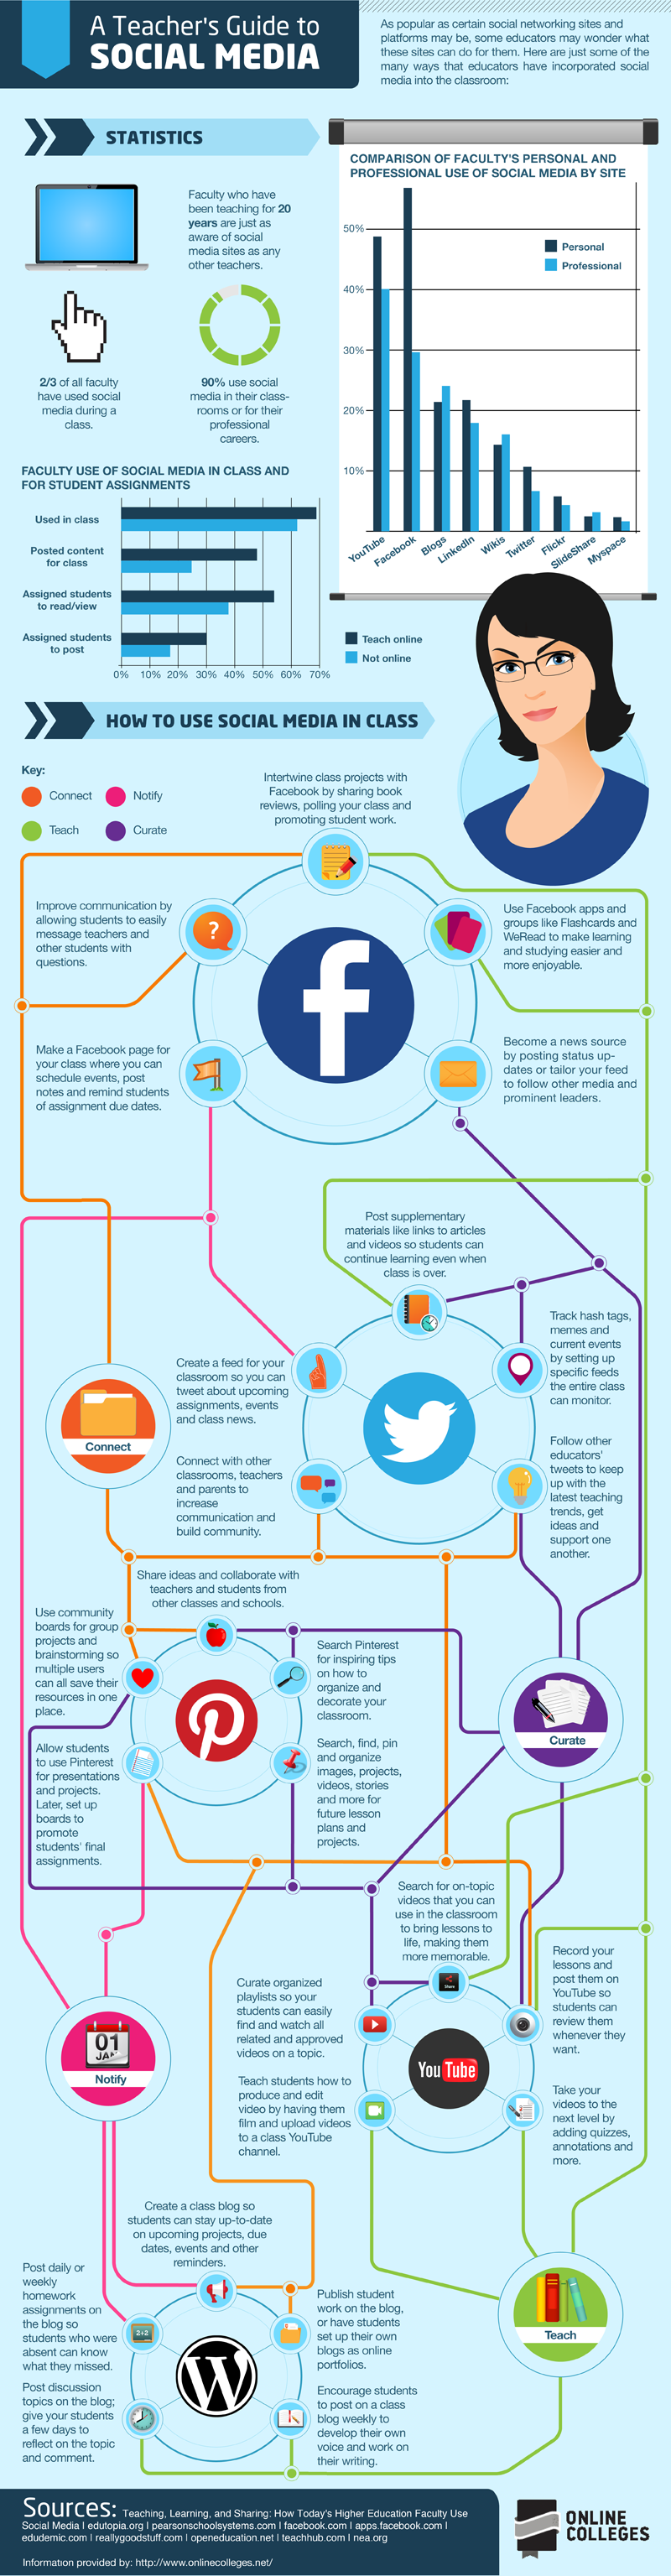 social media in education